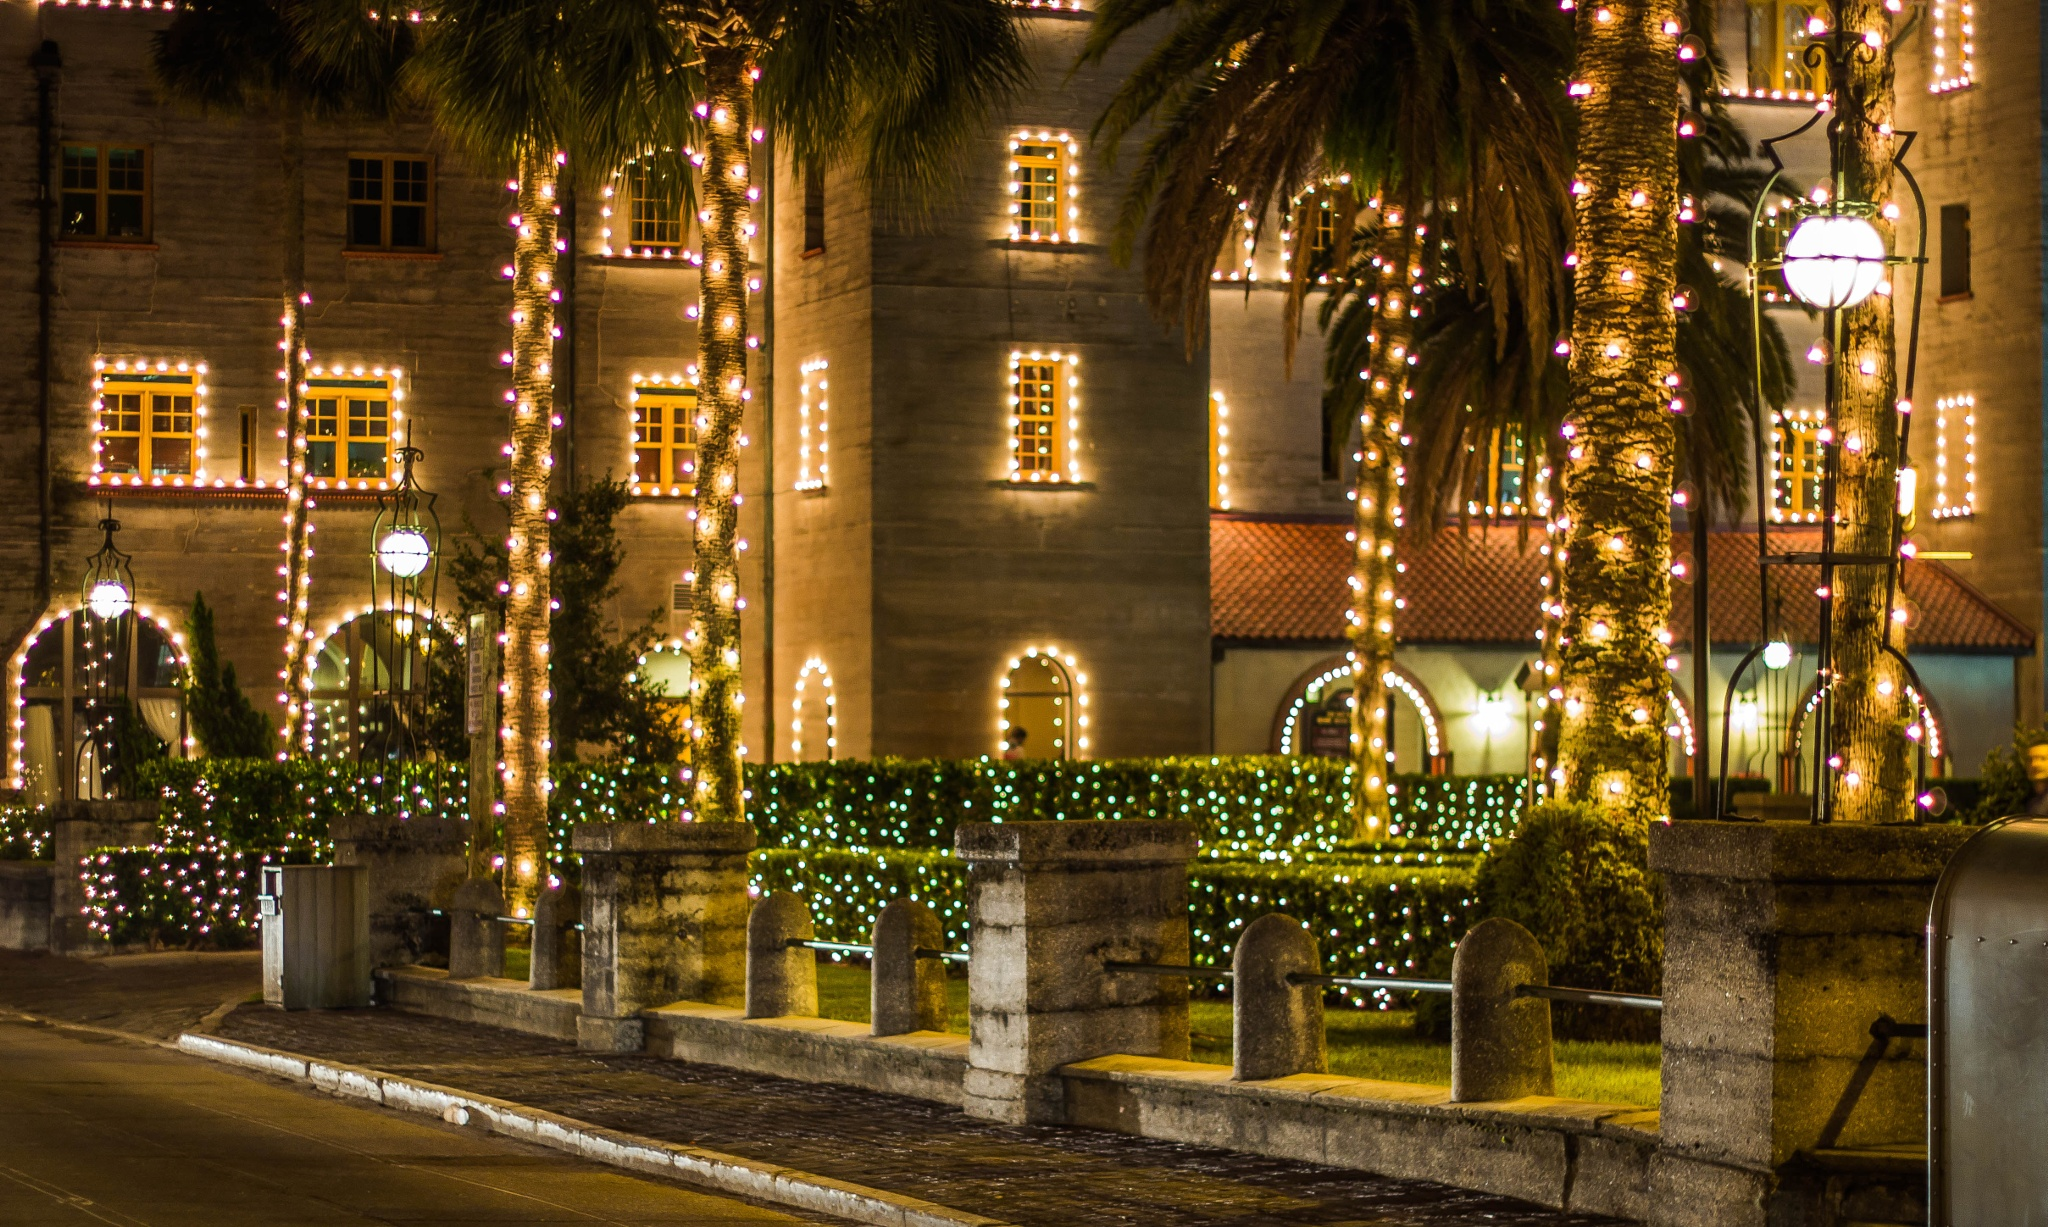 All Decked Out For Christmas by Peter Cavaliere